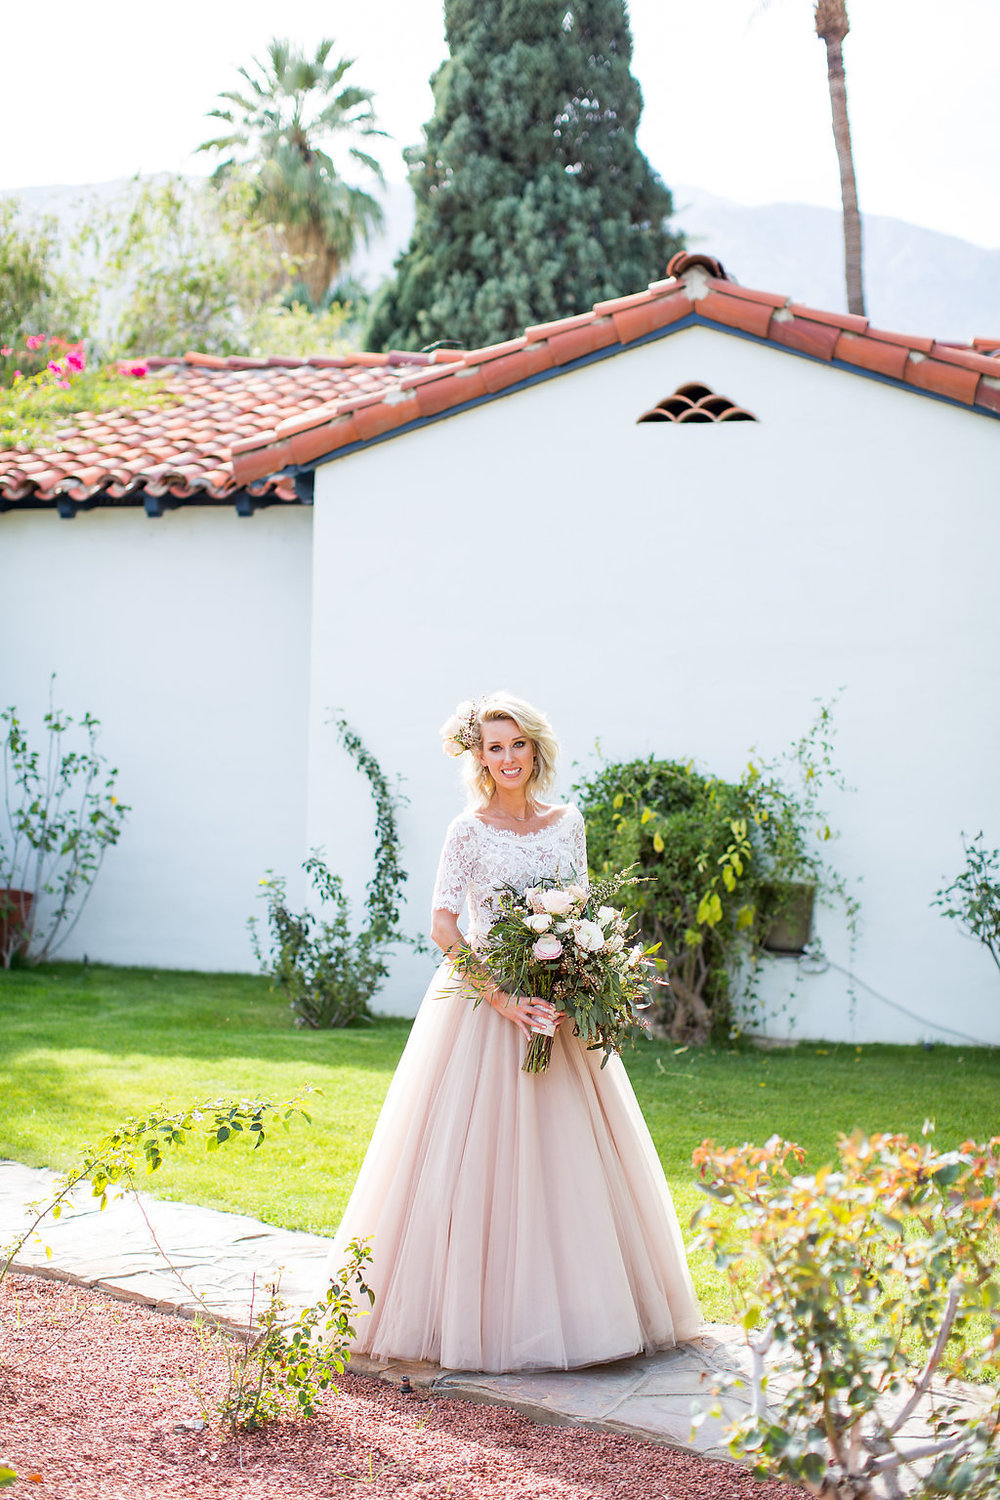 LA CHUREYA ESTATE WEDDING_BETSI EWING STUDIO 262.JPG